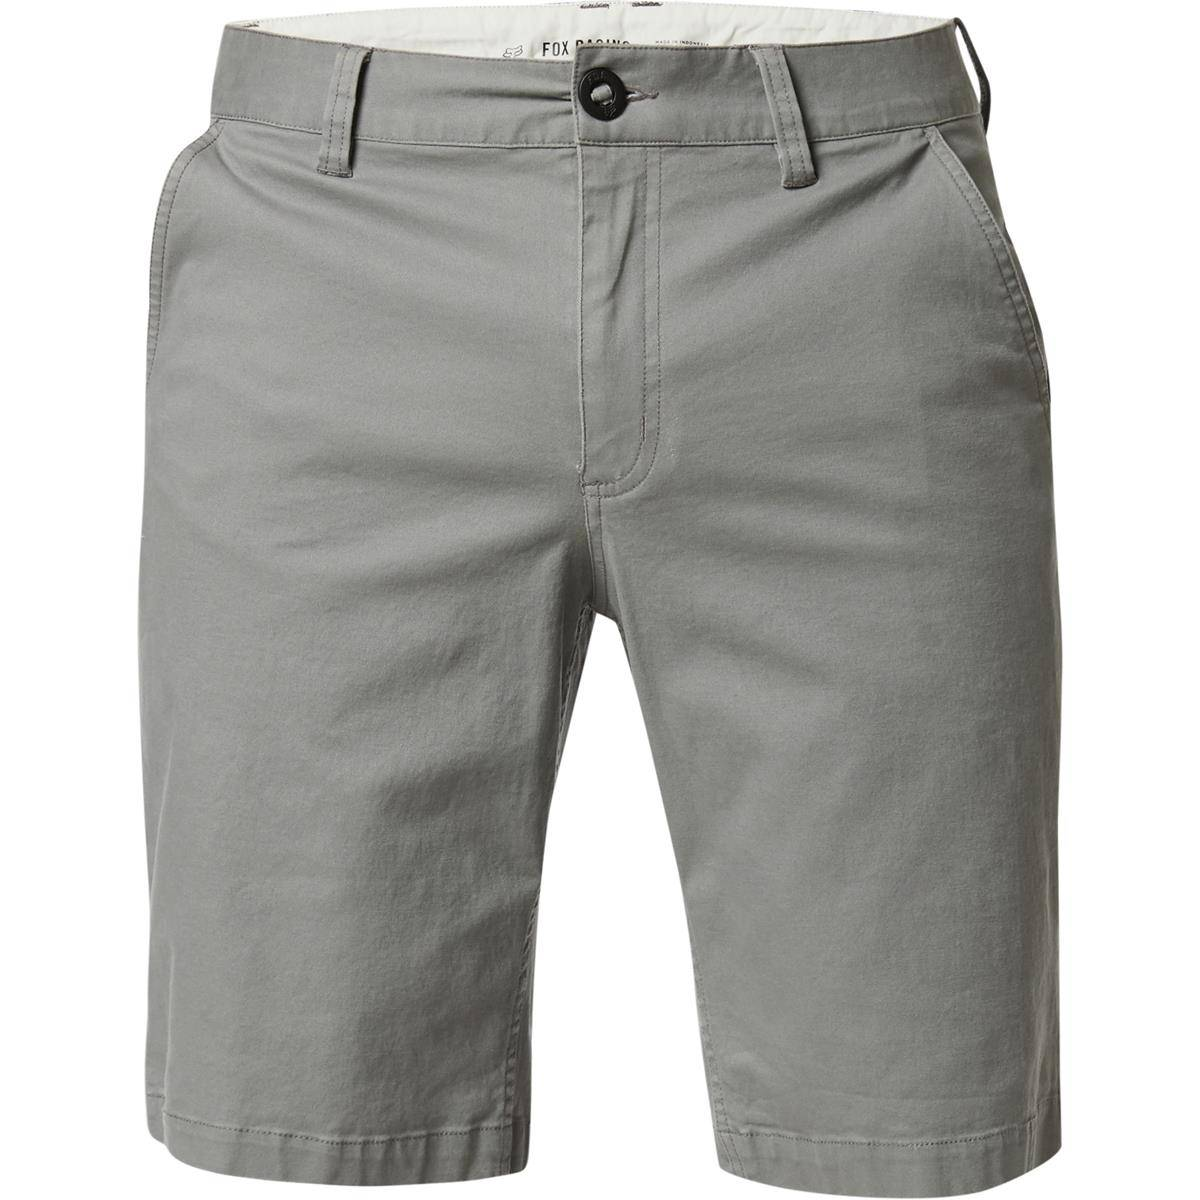 Fox Shorts Essex 2.0 - 30 - Gris